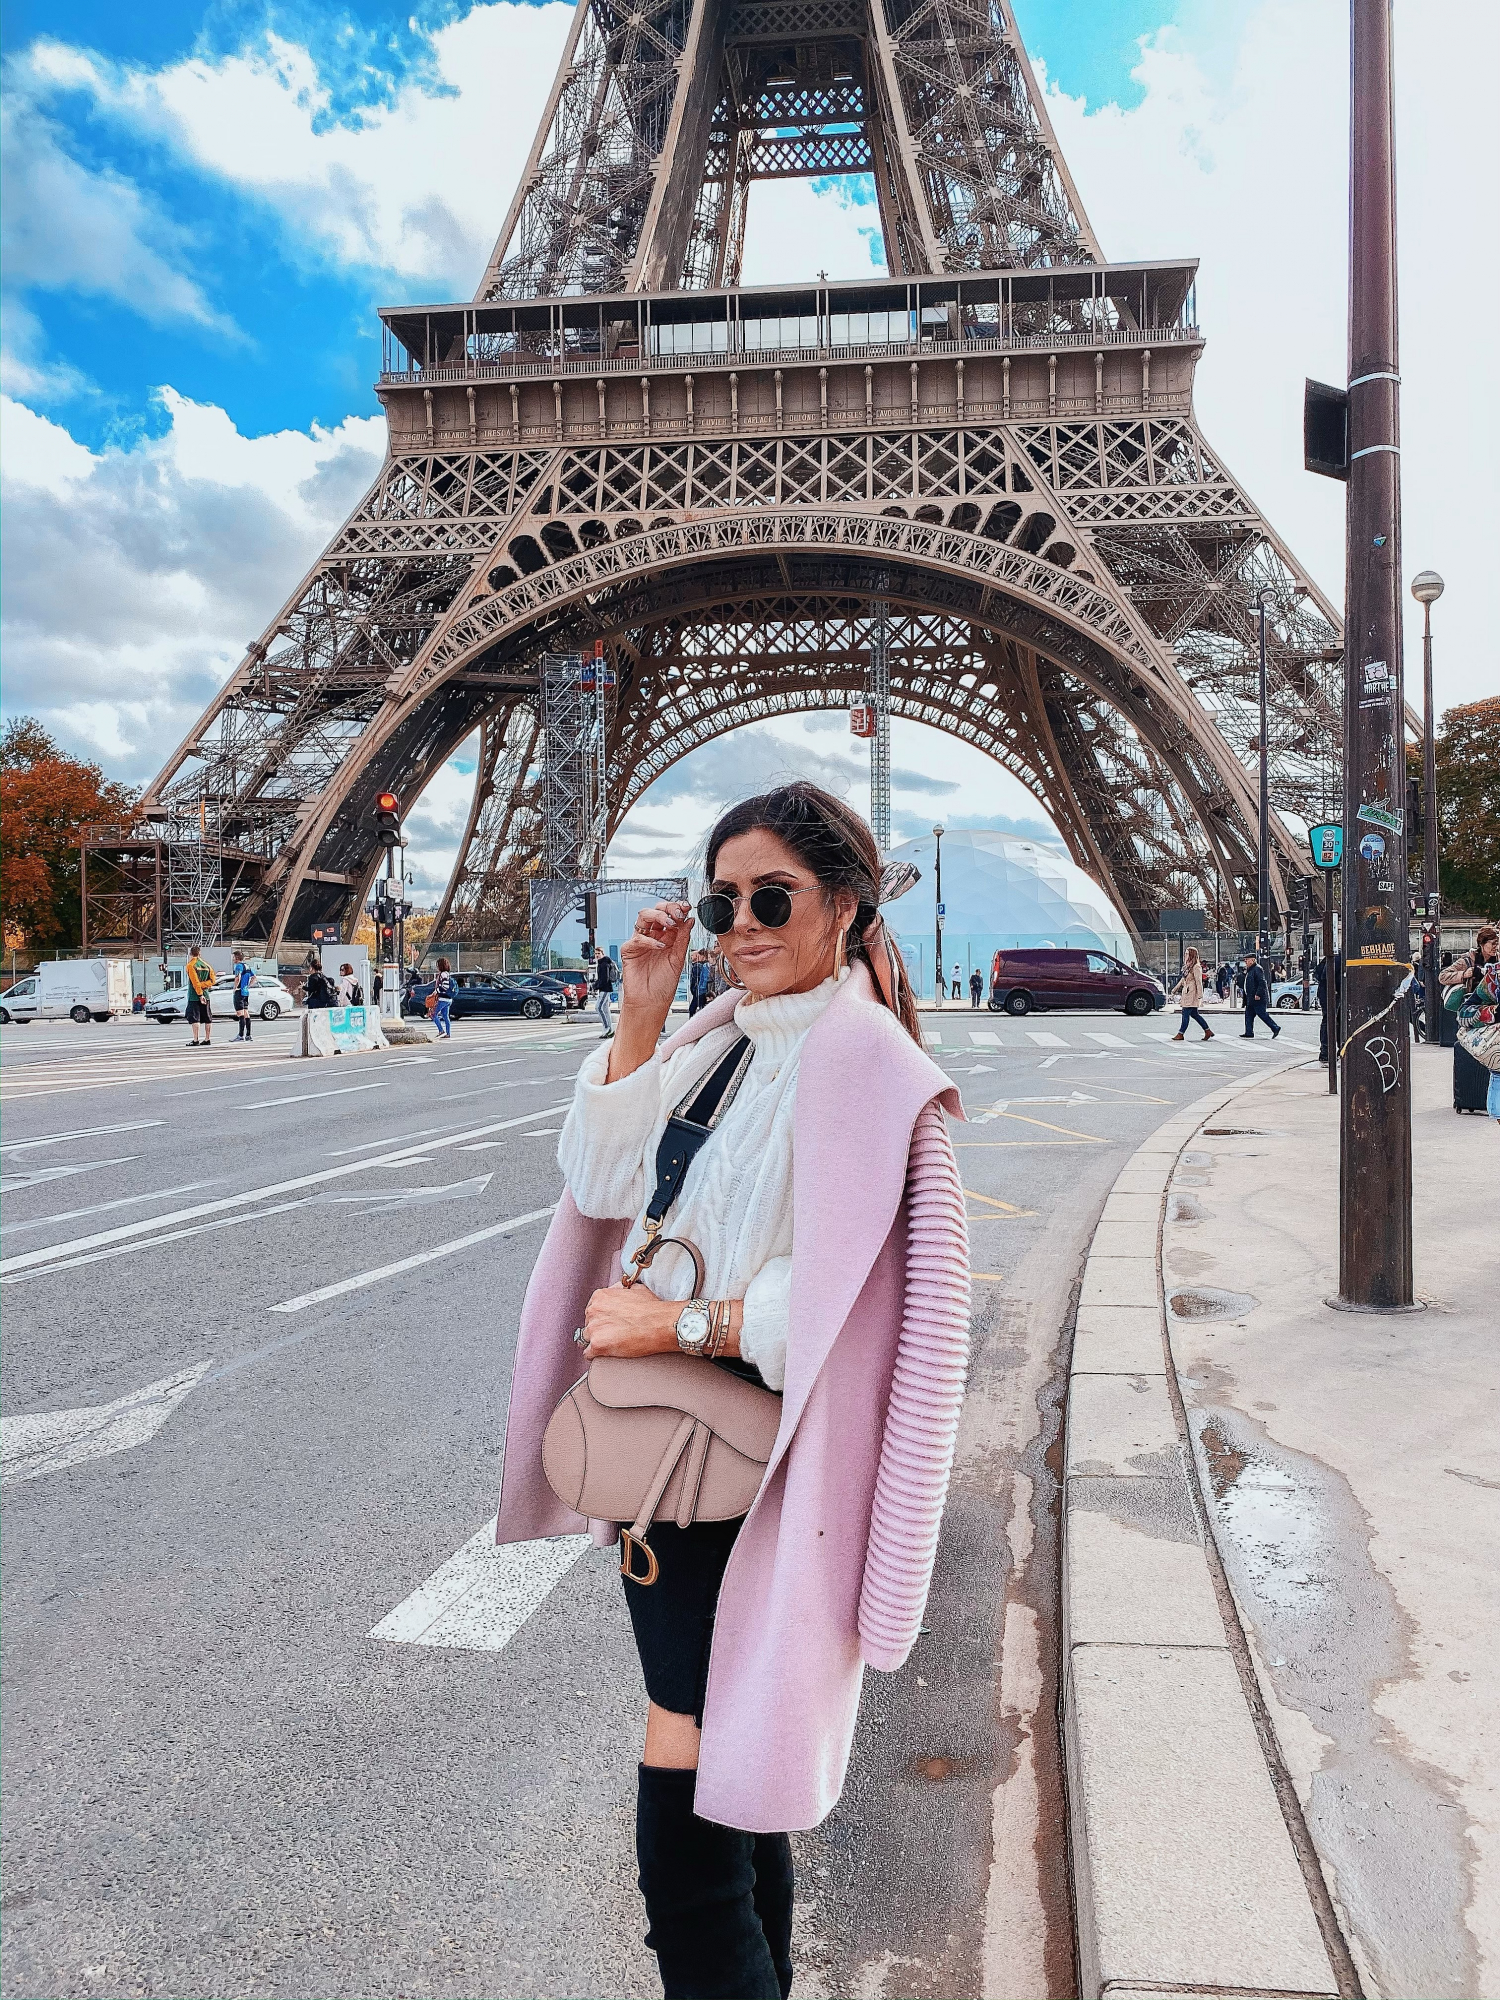 sentaler coat review, paris fashion street style fall 2019 pinterest, nude dior saddle bag with strap, emily gemma | A YEAR IN REVIEW : MASSIVE 2019 INSTAGRAM RECAP by popular Oklahoma life and style blog, The Sweetest Thing: image of a woman standing by the Eiffel Tower and wearing a pink Sentaler Long Wide Collar Wrap Coat.